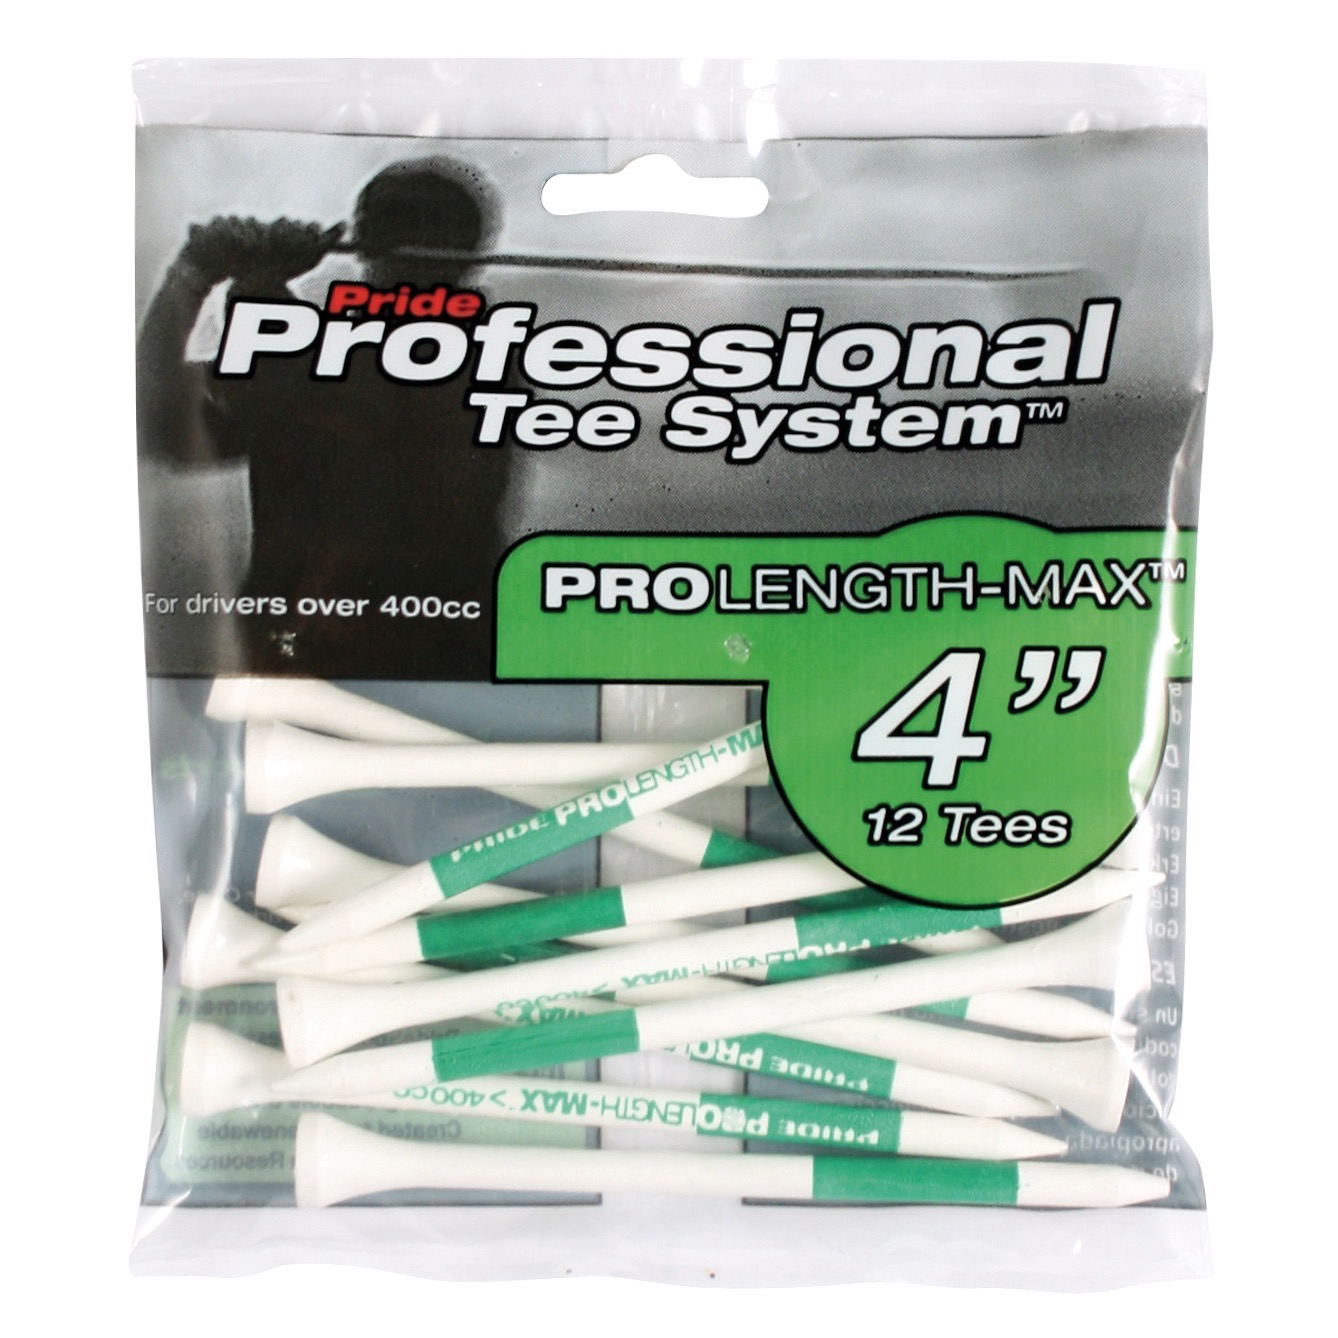 how to use pride professional tee system